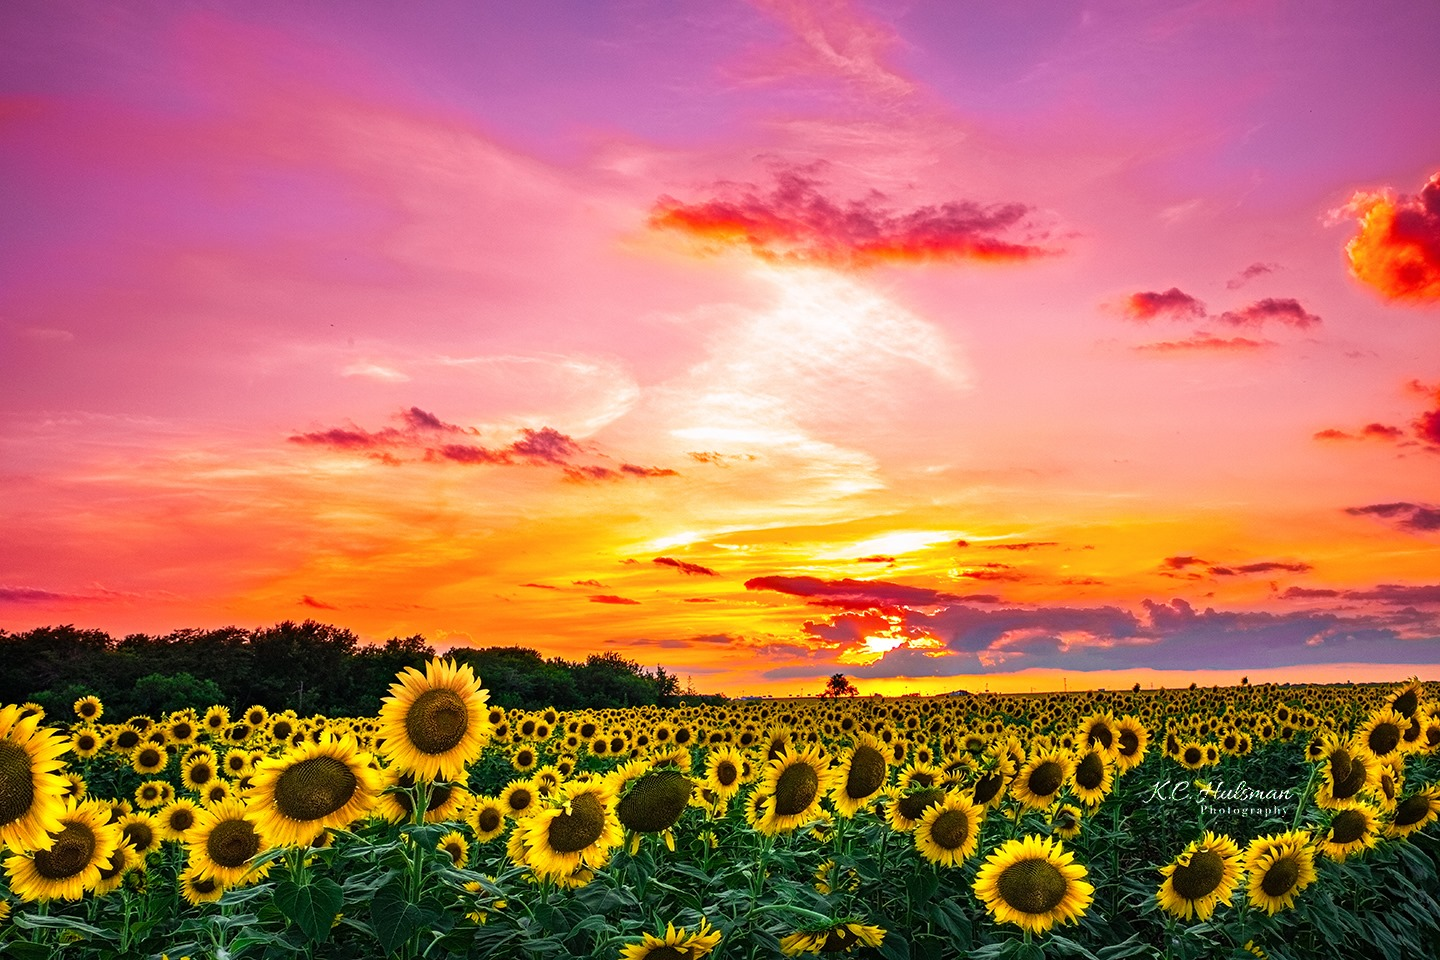 Sunset over a Sunflower field